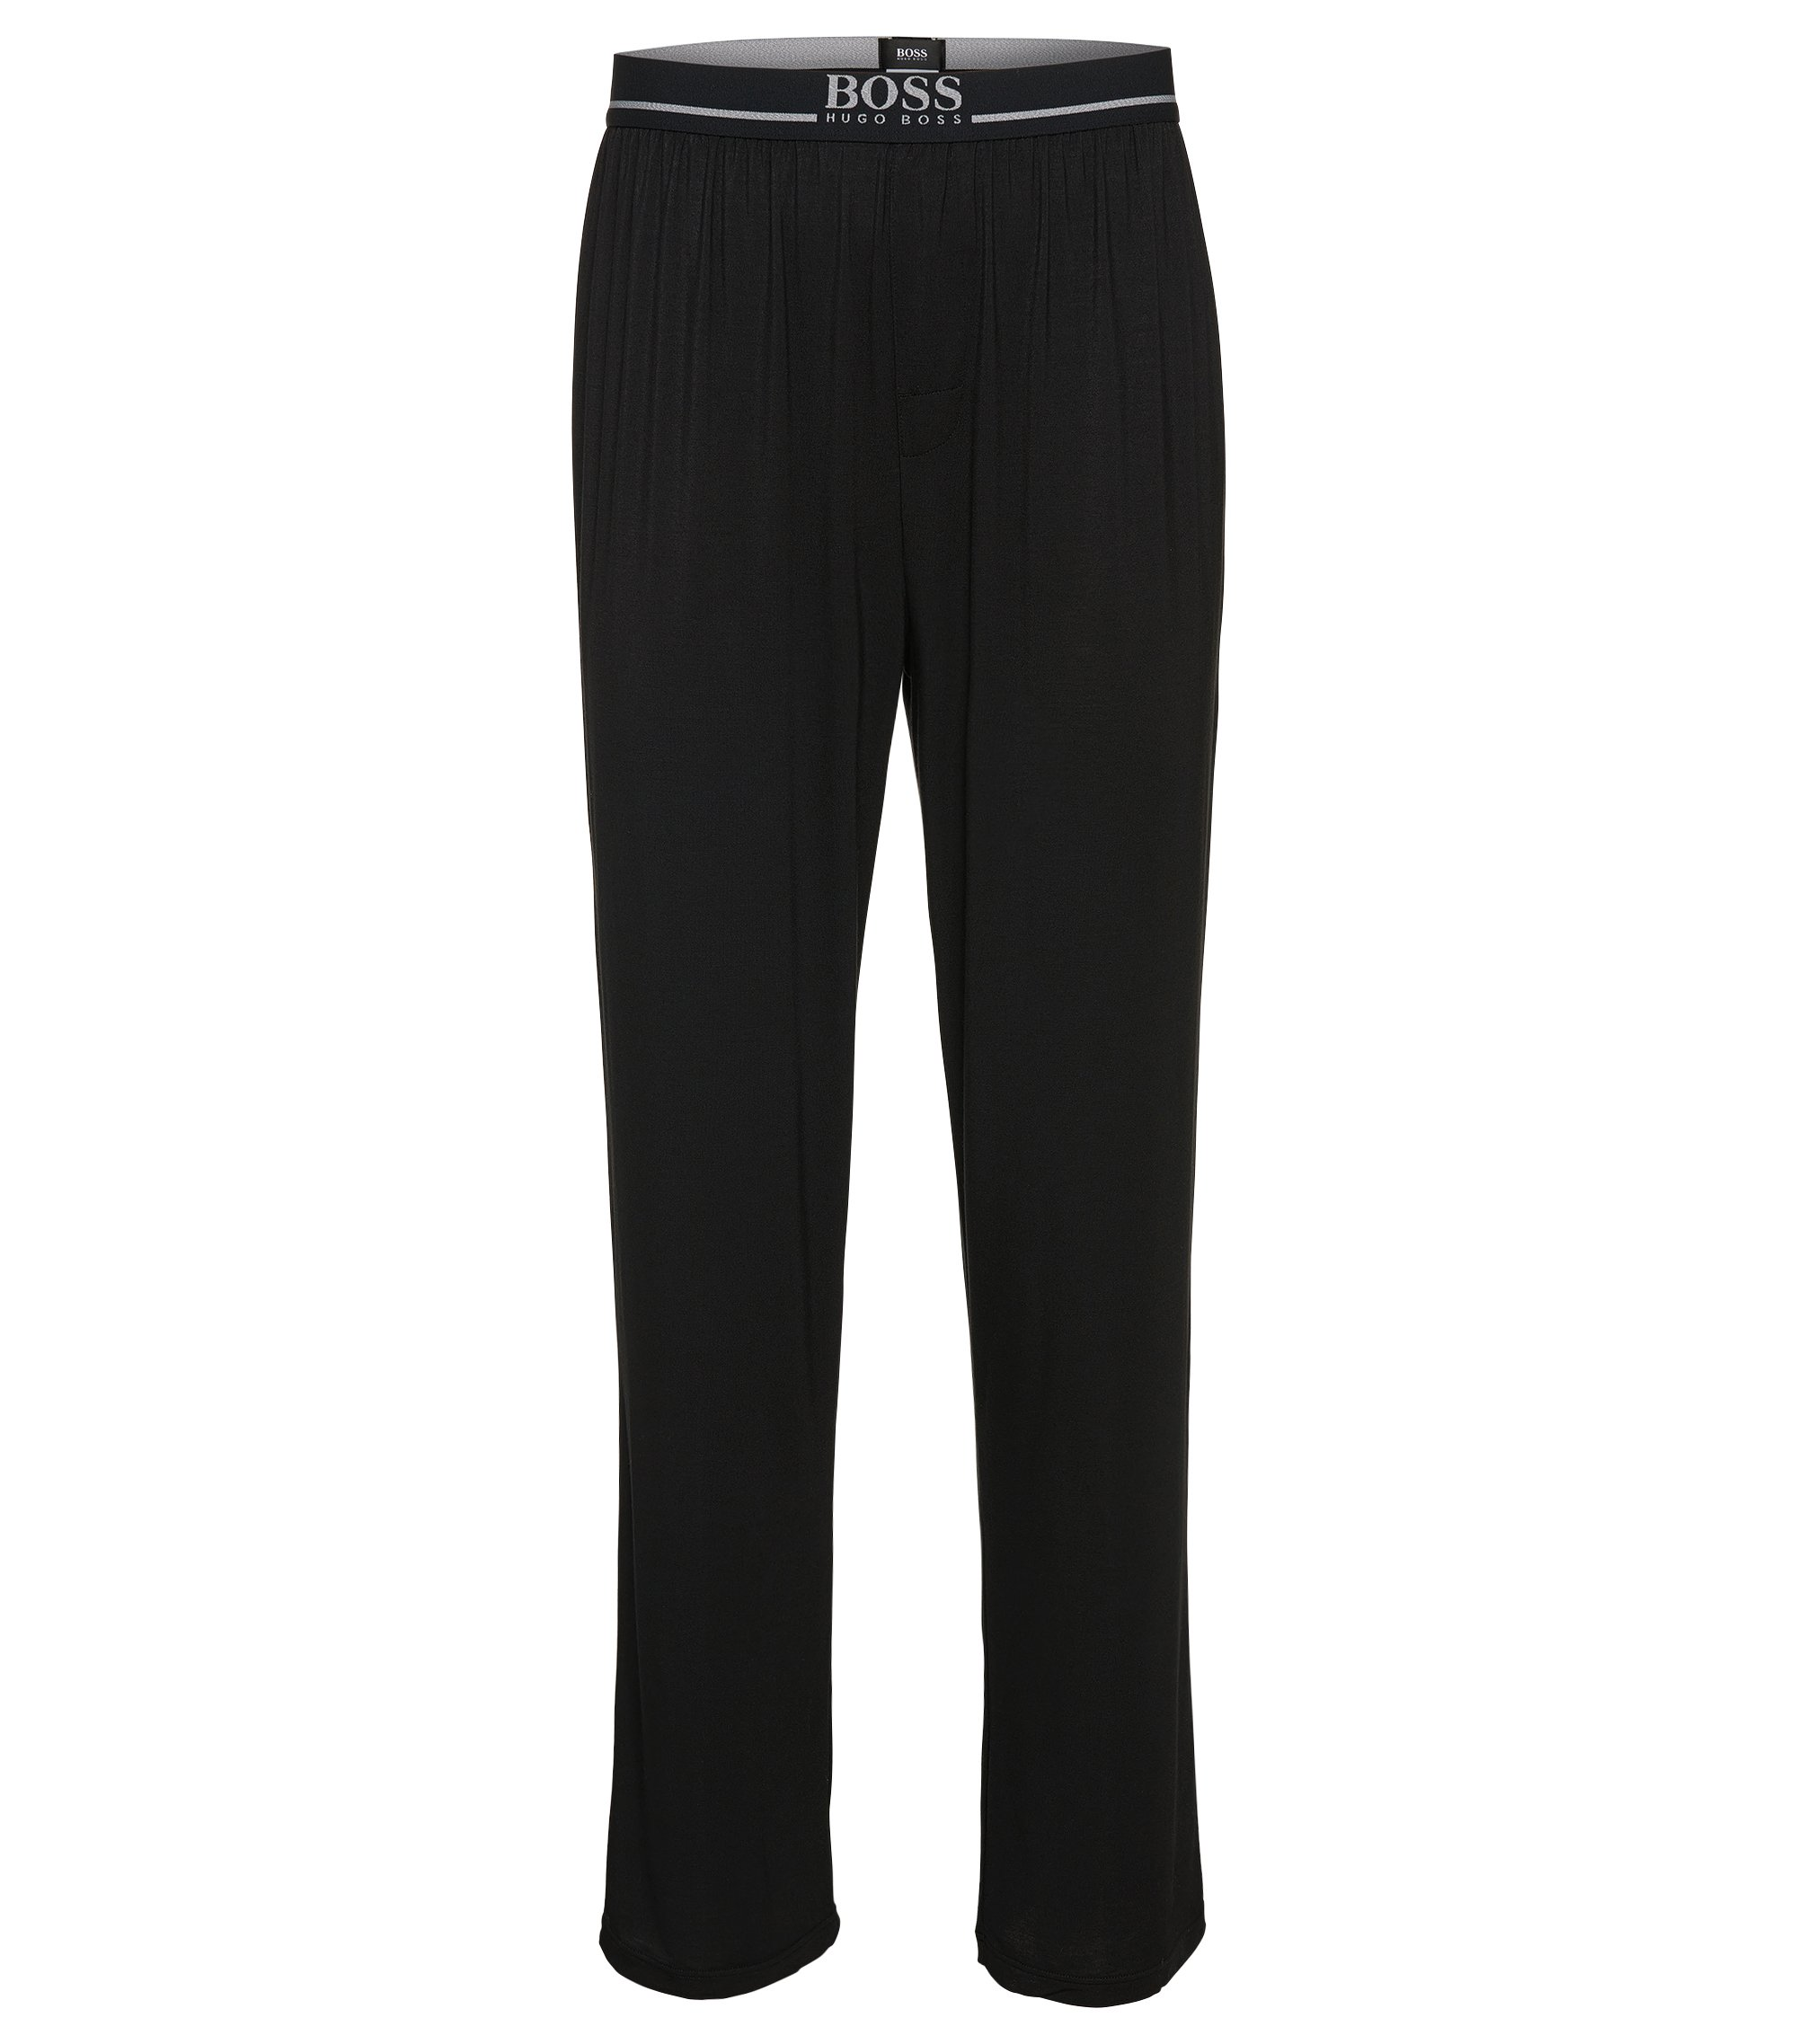 Stretch Modal Lounge Pant | Long Pant EW, Black